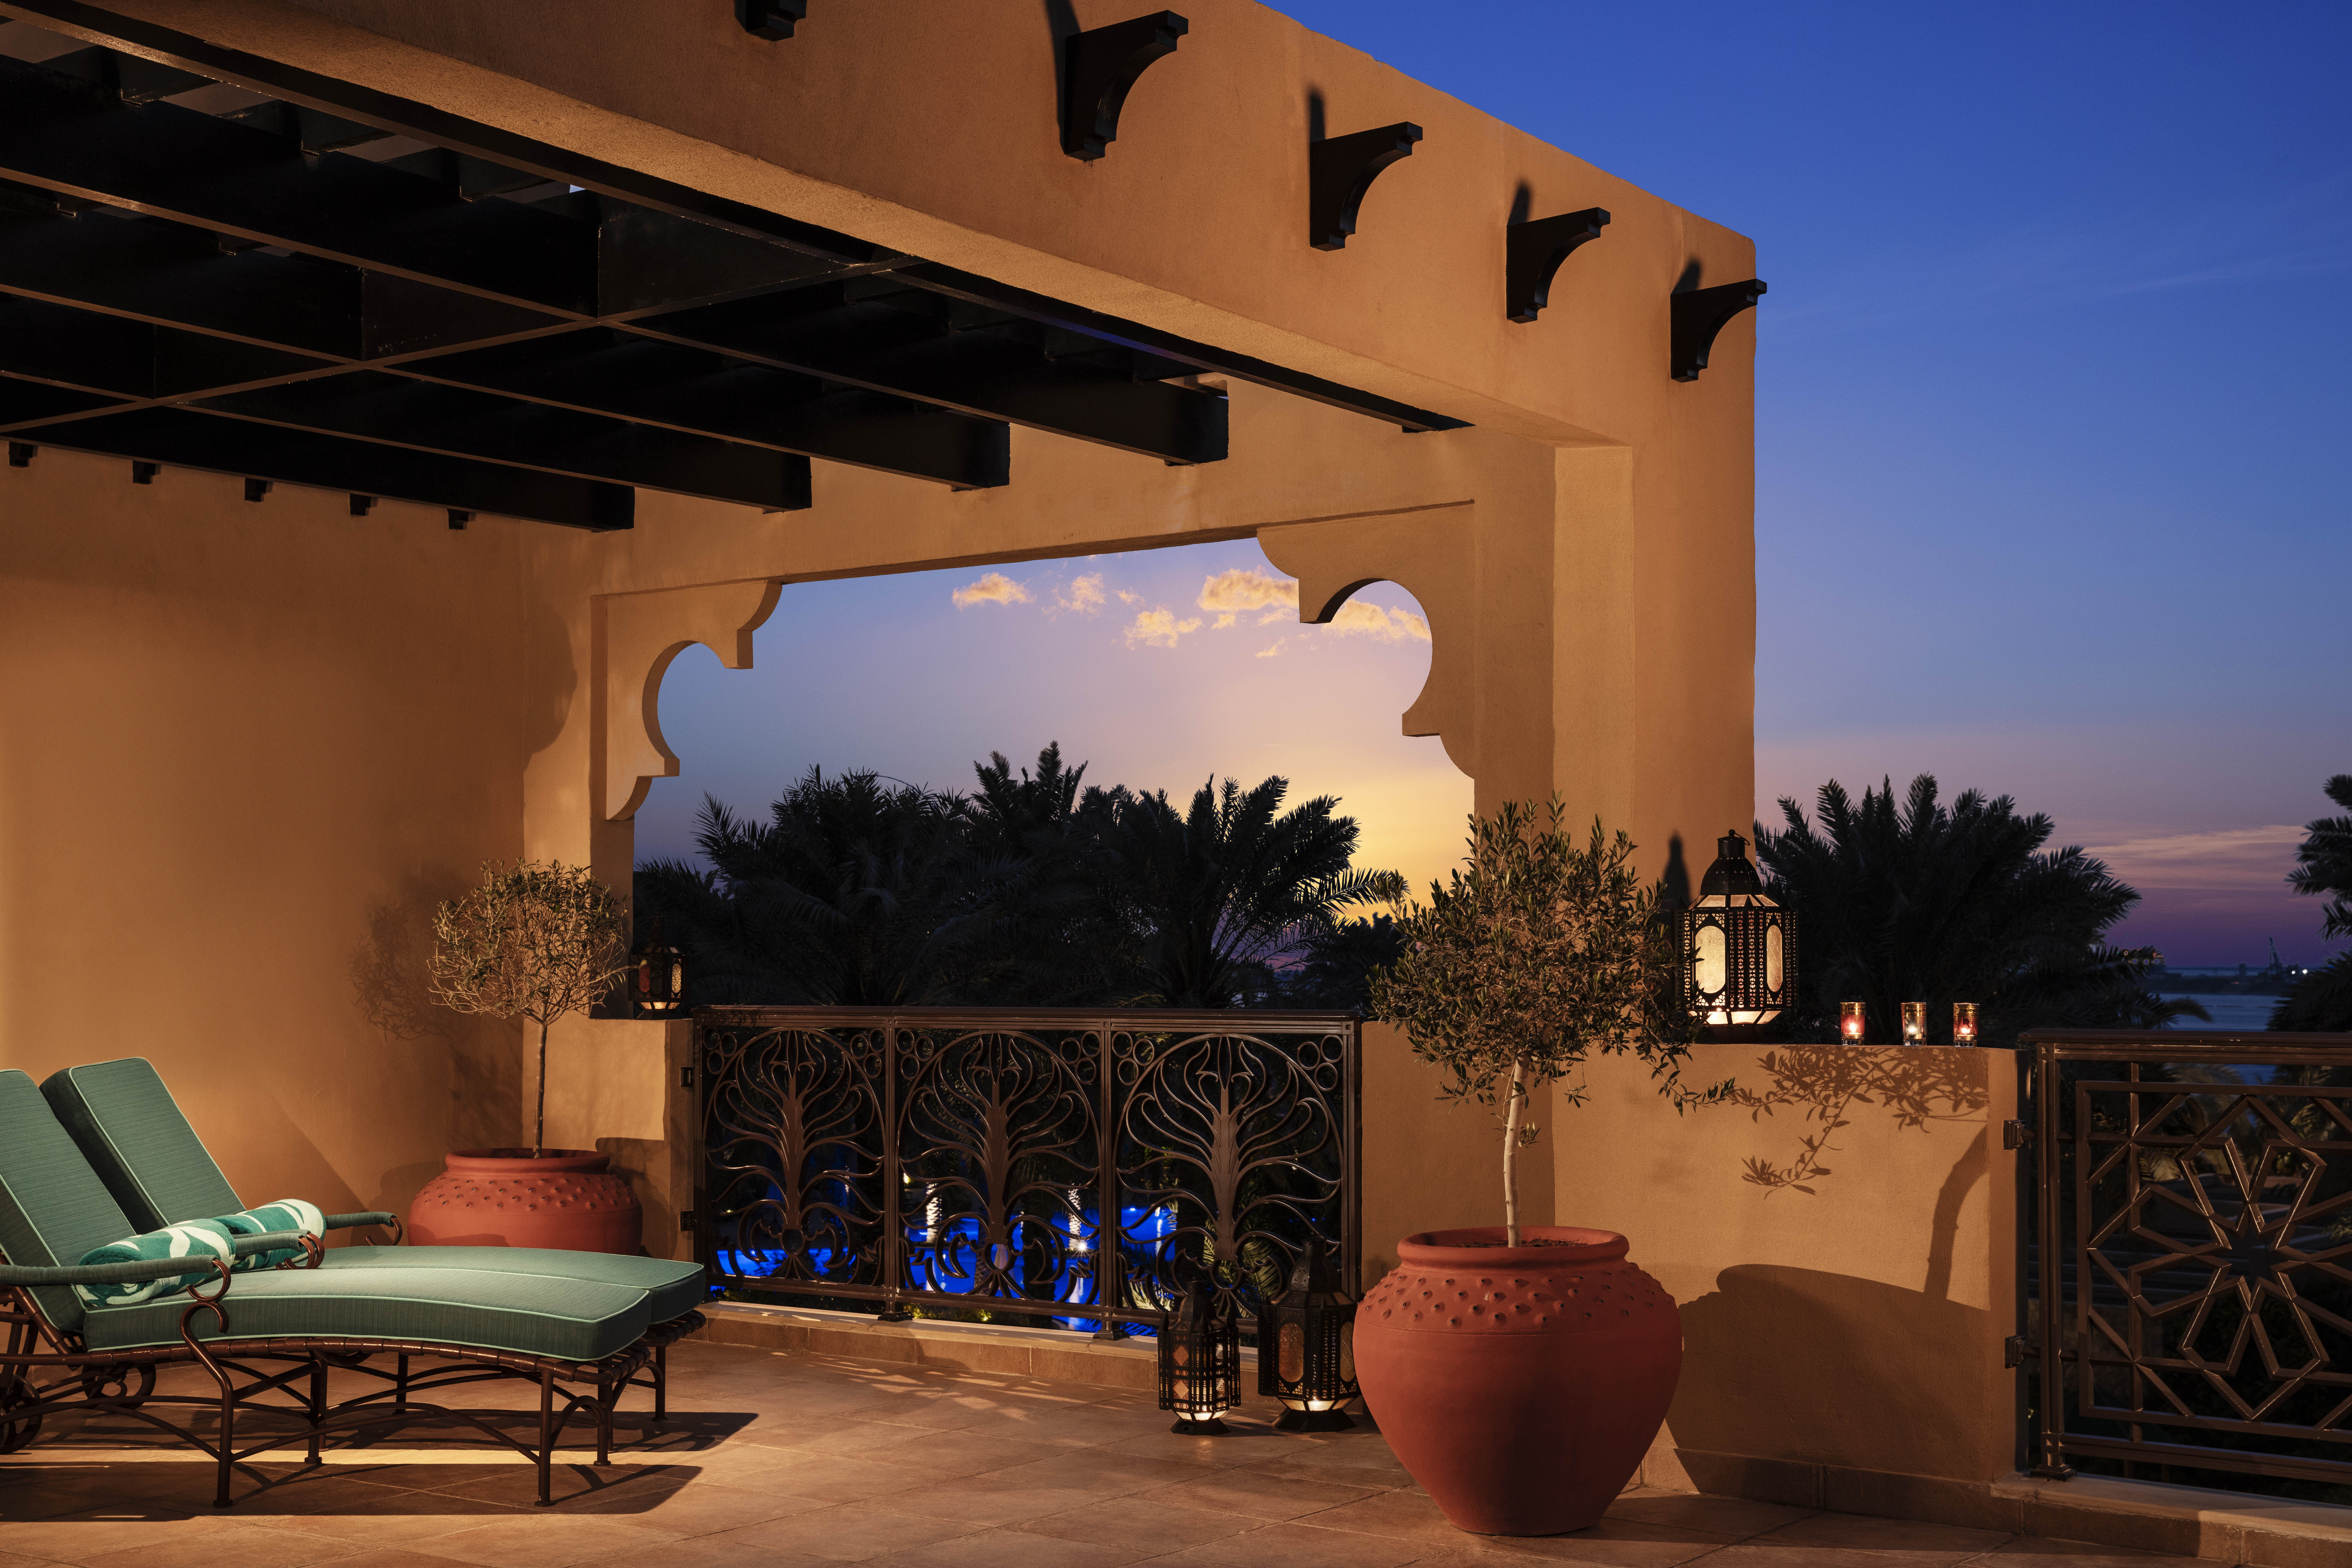 OO_RoyalMirage_Accommodation_PrinceSuite_Terrace_1437_MASTER